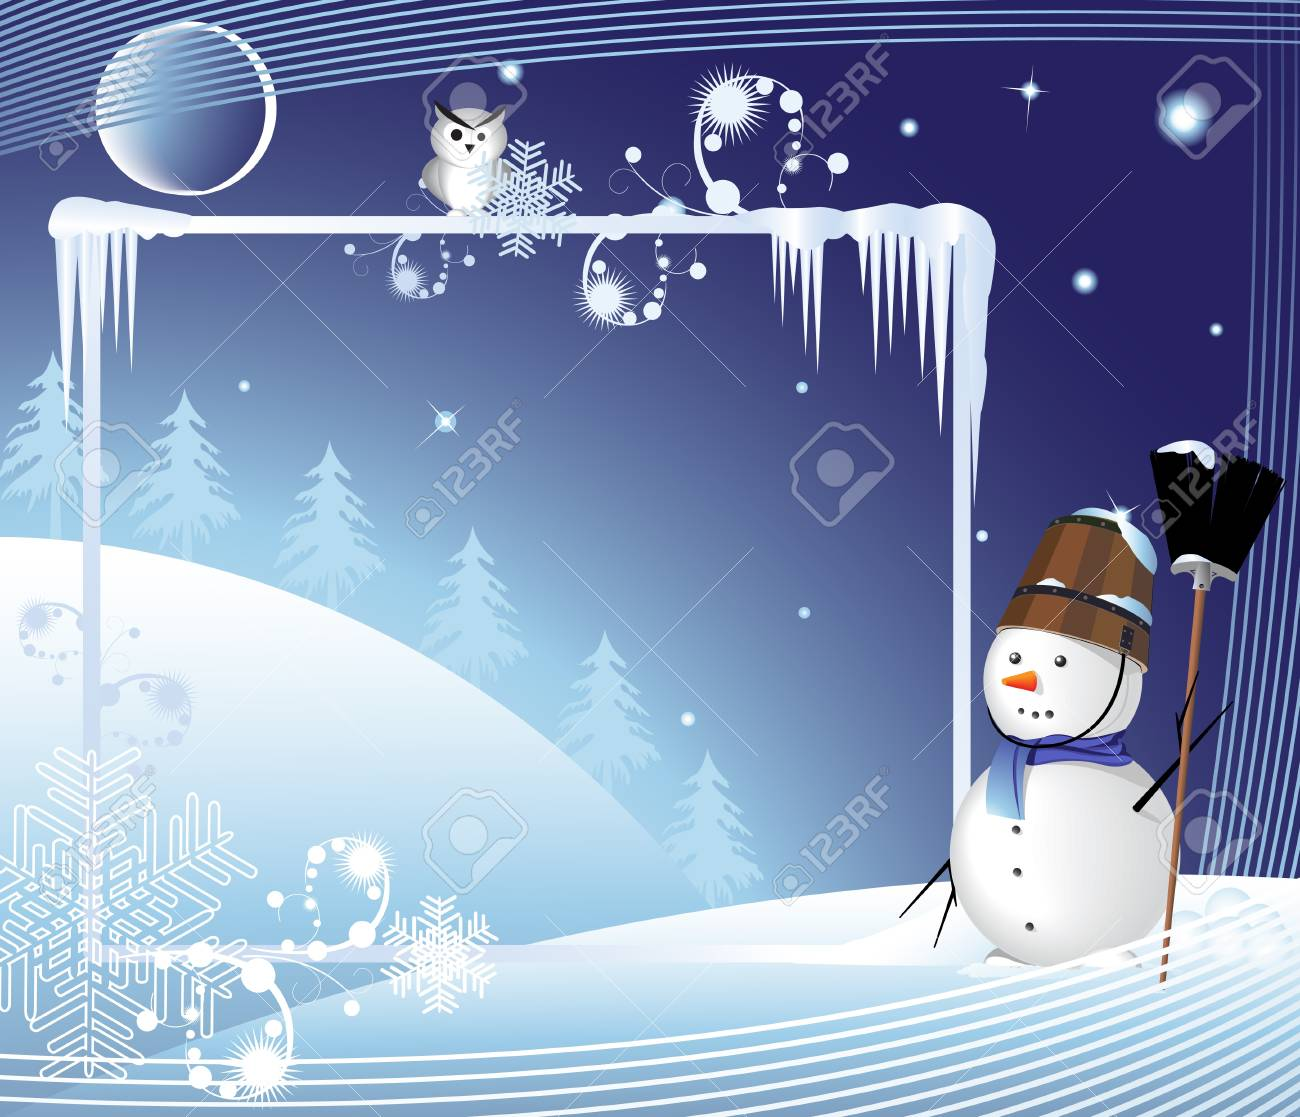 Snowman with a broom on a night winter background Stock Vector - 17021749